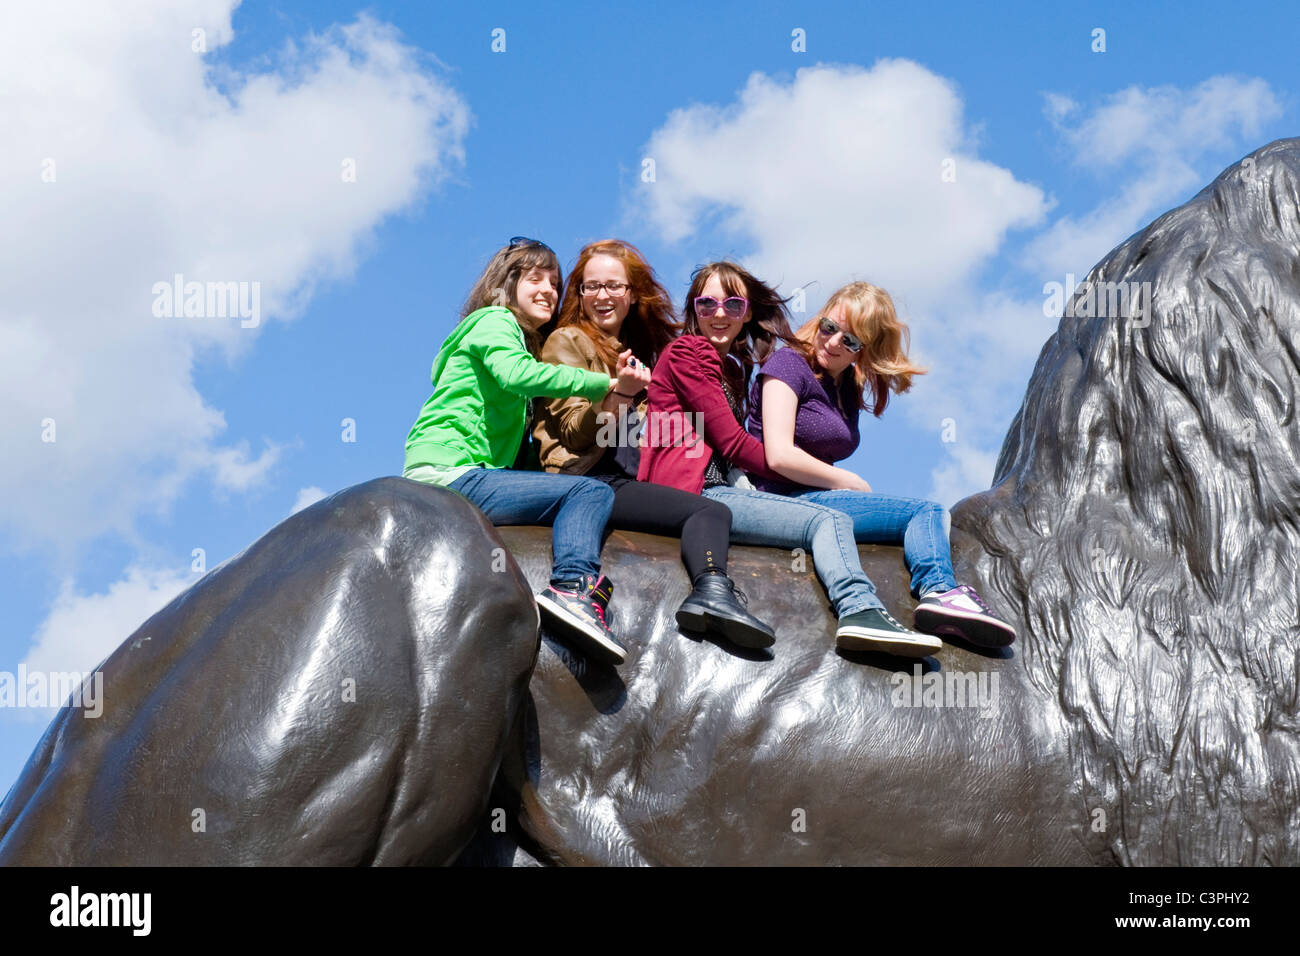 London , Westminster , Trafalgar Square , 4 or four pretty young girls pose for photo or photograph  astride statue - Stock Image